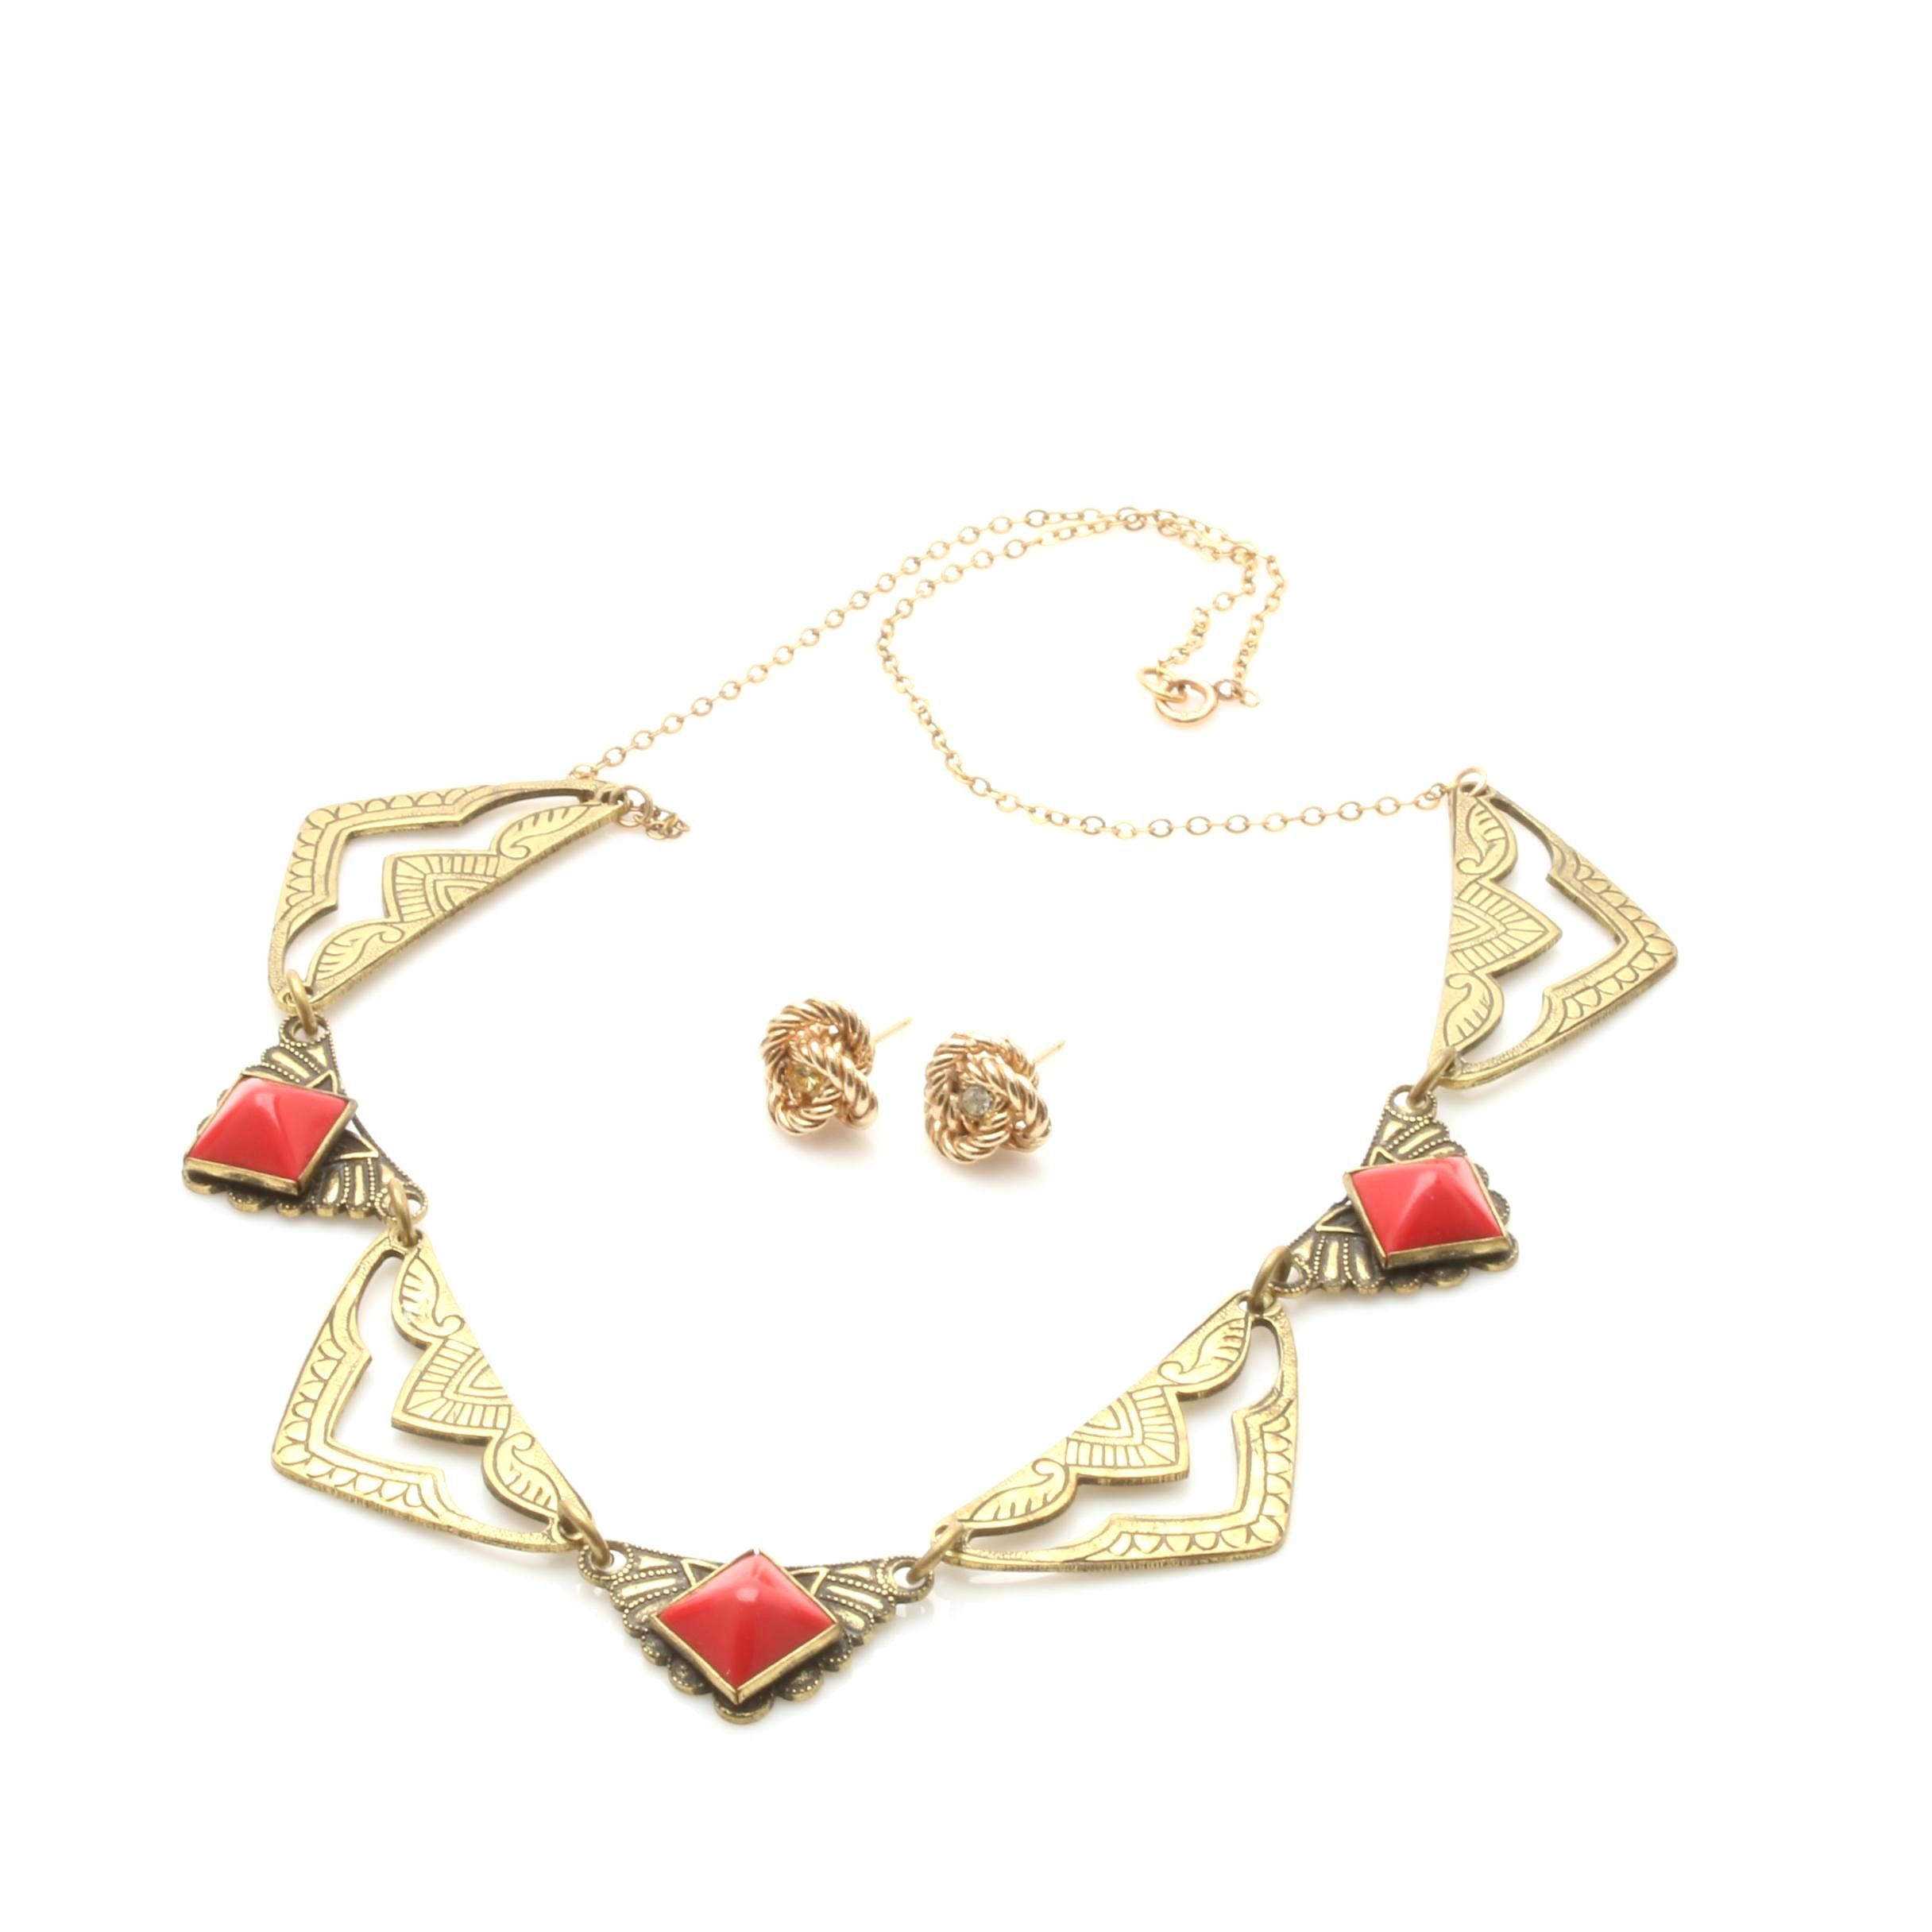 Red Plastic Pyramid Necklace with 14K Yellow Gold Chain and Knot Earrings